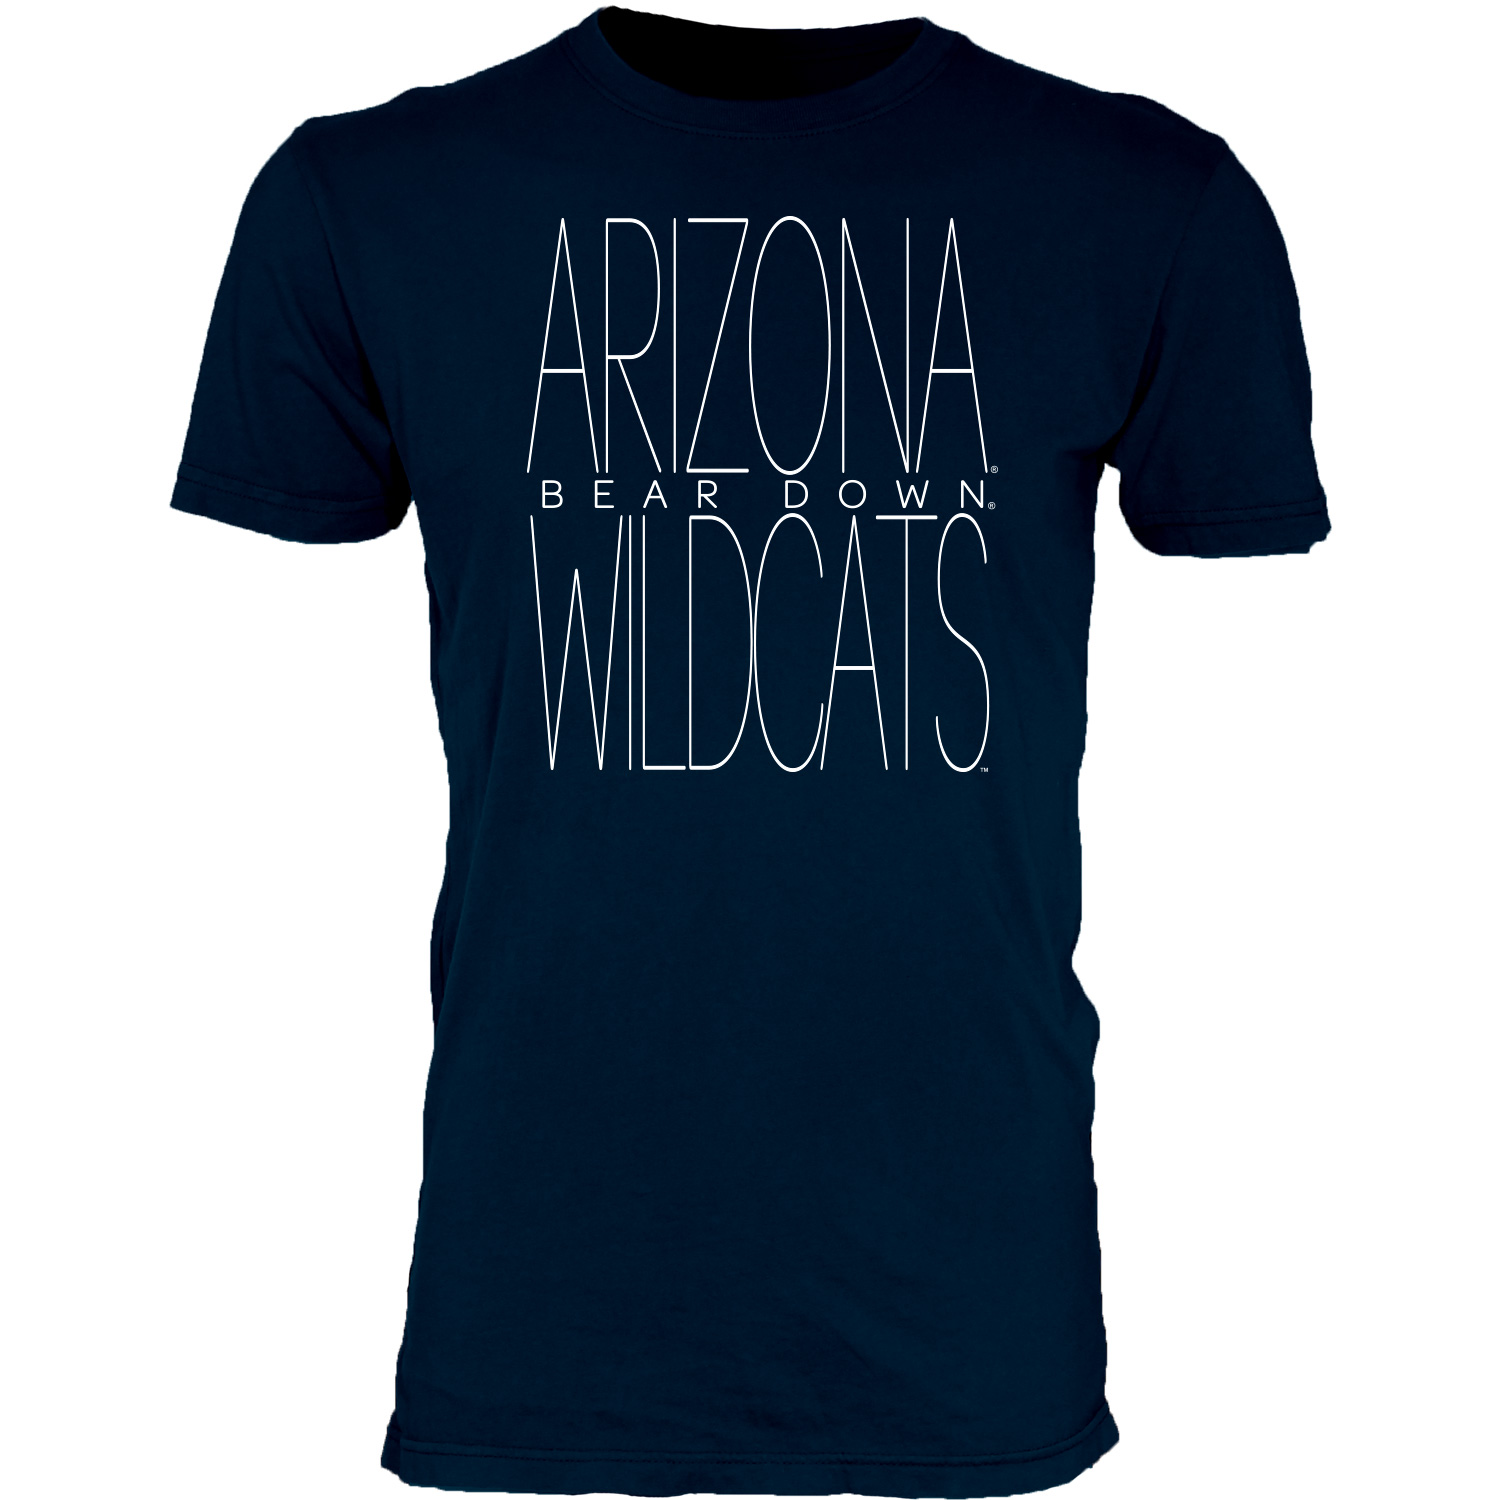 Image For Blue 84: Arizona Bear Down Wildcats Dyed Tee - Navy